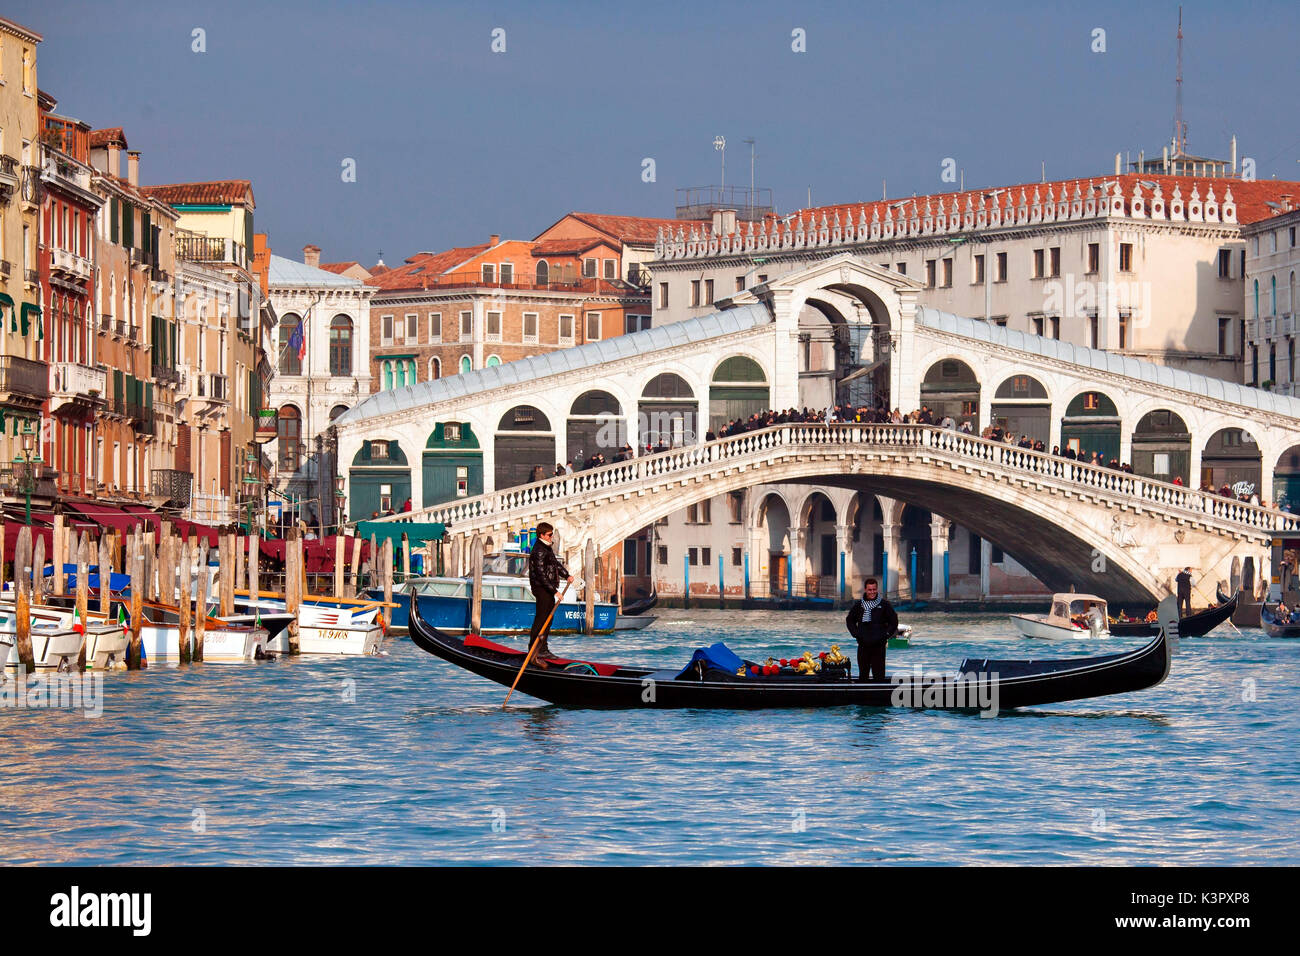 A gondola crossing the Grand Canal right in front of the Rialto Bridge, one of the most recognizable Venetian landmarks  Venice, Veneto Italy Europe - Stock Image